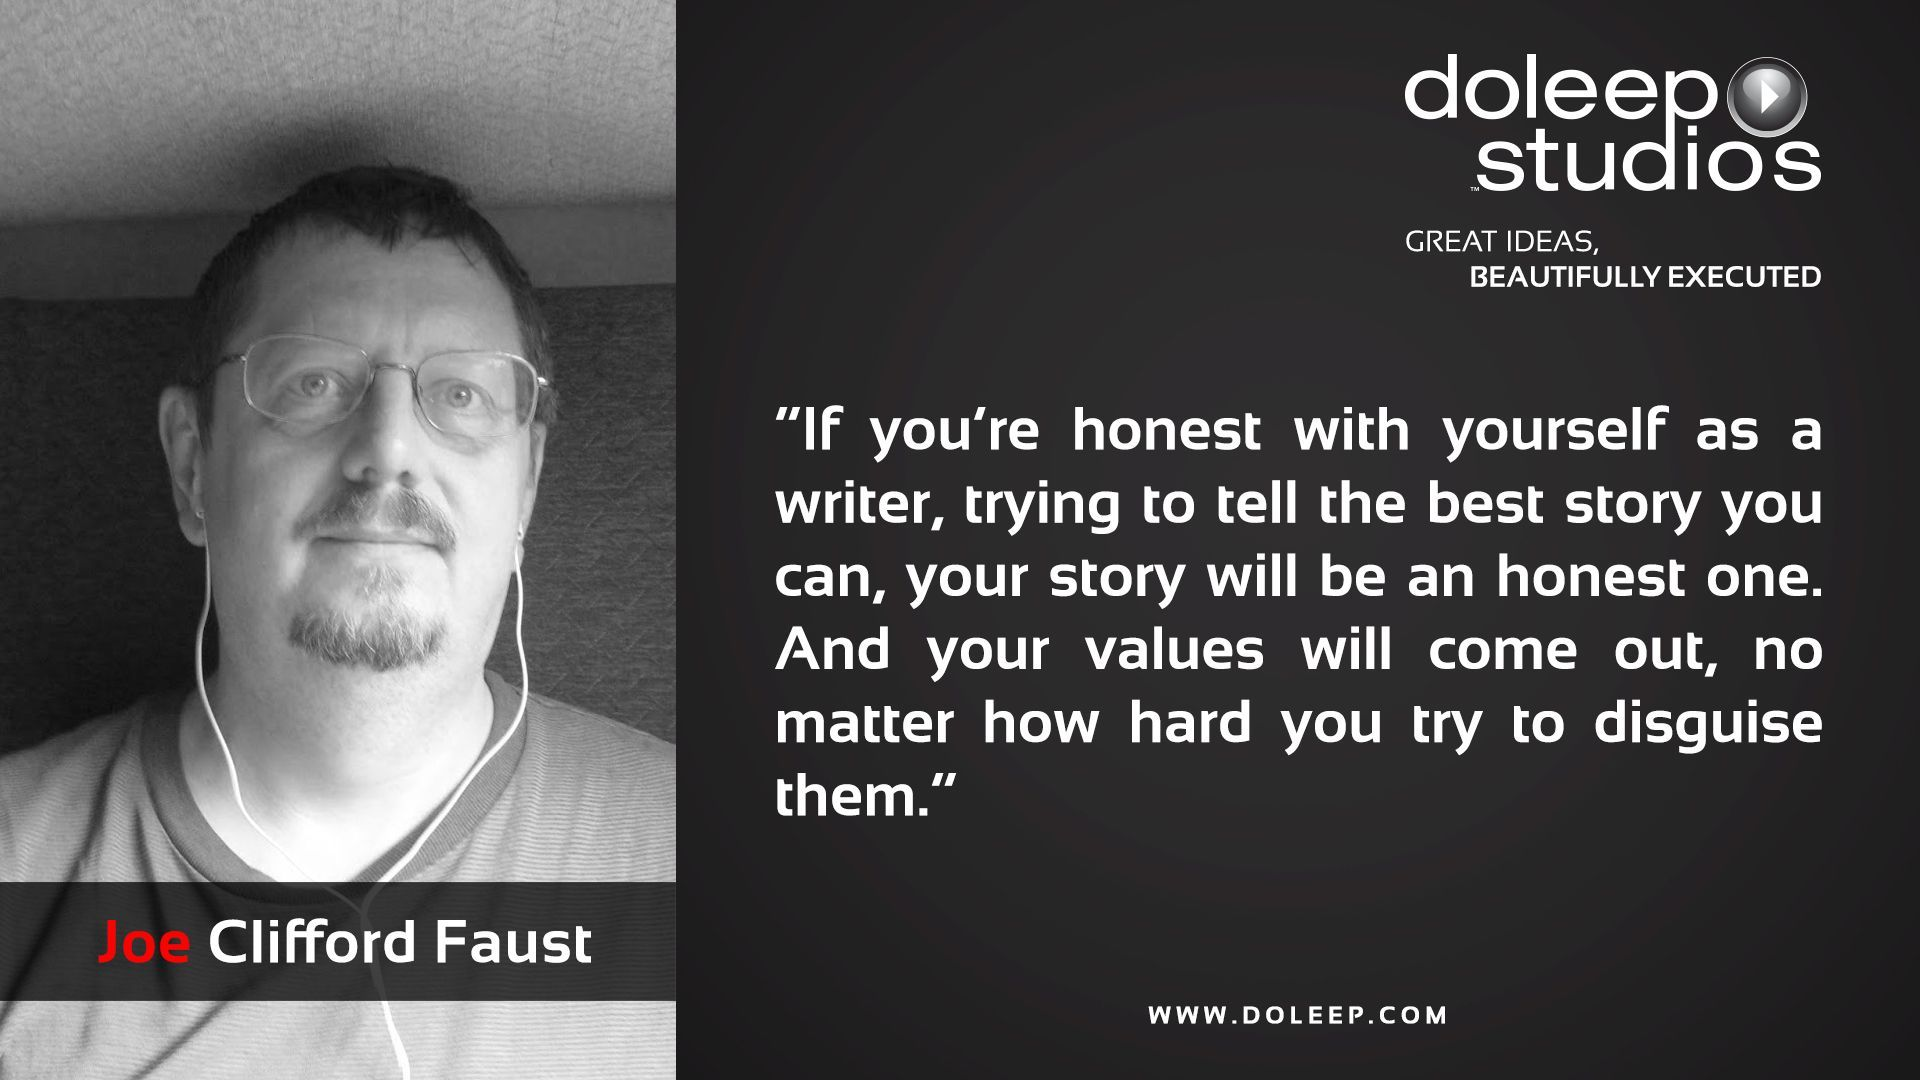 """""""If you're honest with yourself as a writer, trying to tell the best story you can, your story will be an honest one. And your values will come out, no matter how hard you try to disguise them.""""  #business #entrepreneur #fortune #leadership #CEO #achievement #greatideas #quote #vision #foresight #success #quality #motivation #inspiration #inspirationalquotes #domore #dubai#abudhabi #uae www.doleep.com #howtodisguiseyourself """"If you're honest with yourself as a writer, trying to tell th #howtodisguiseyourself"""